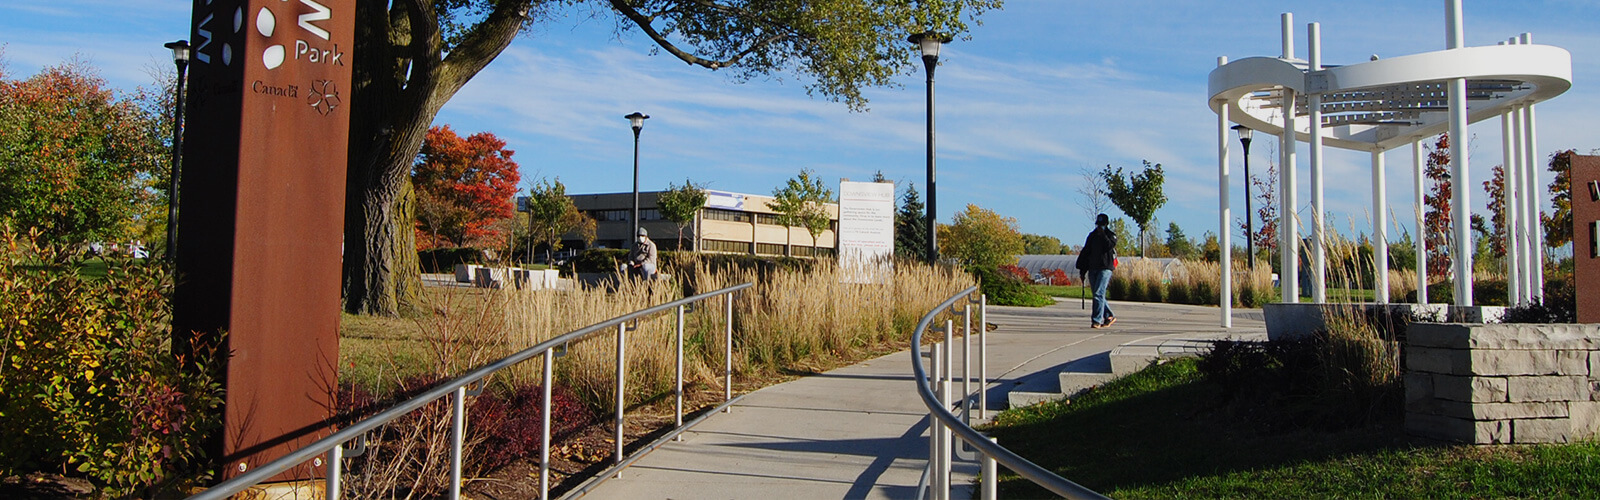 Paved ramp with metal railings on either side runs through the middle of the photo from the foreground. It leads to a paved area with a contemporary gazebo structure. Shrubs, trees and other greenery line the ramp on either side. Person can be seen walking toward the ramp in the centre.